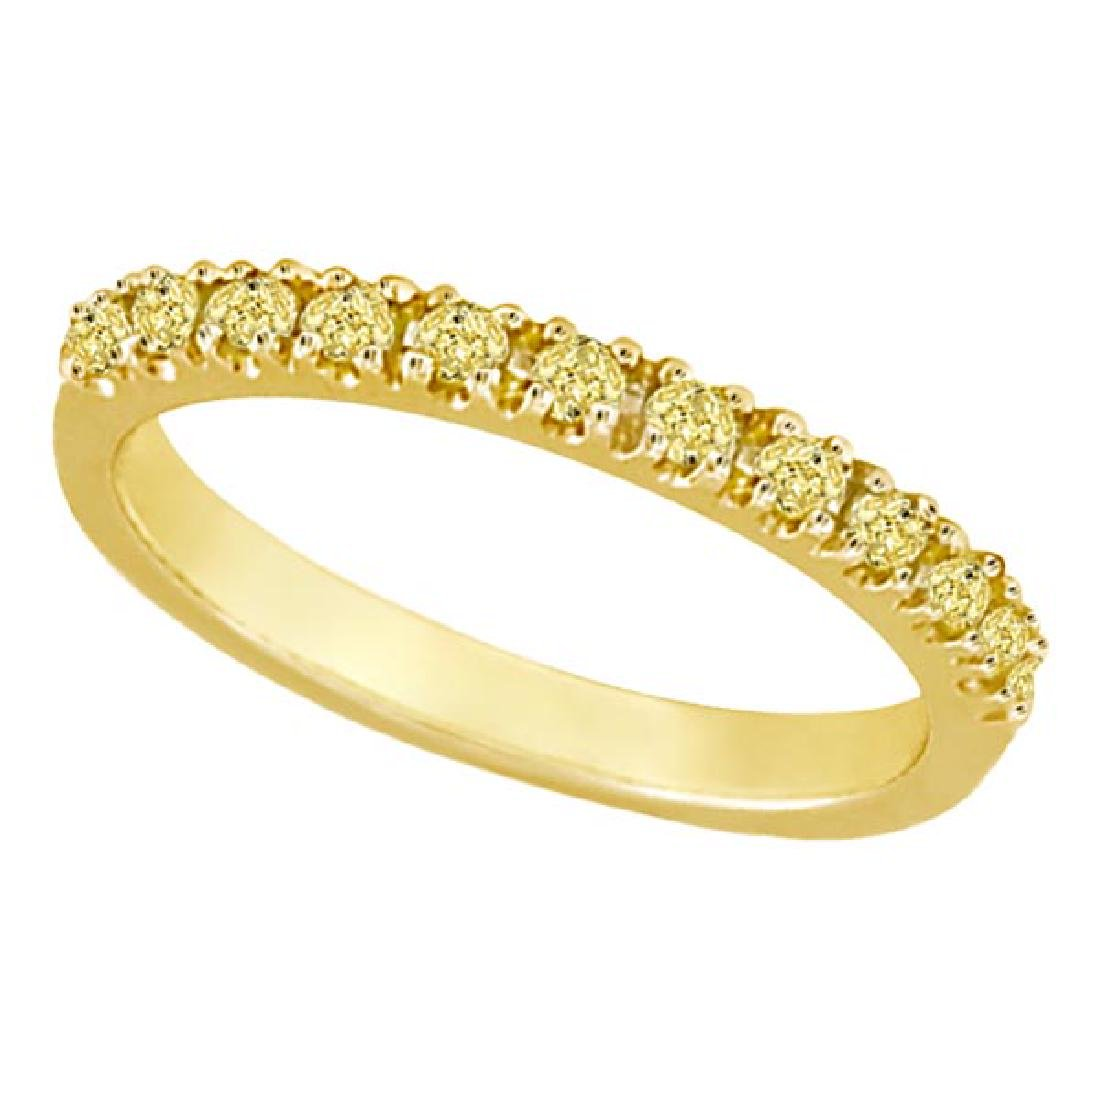 Yellow Canary Diamond Stackable Ring Band 14k Yellow Go